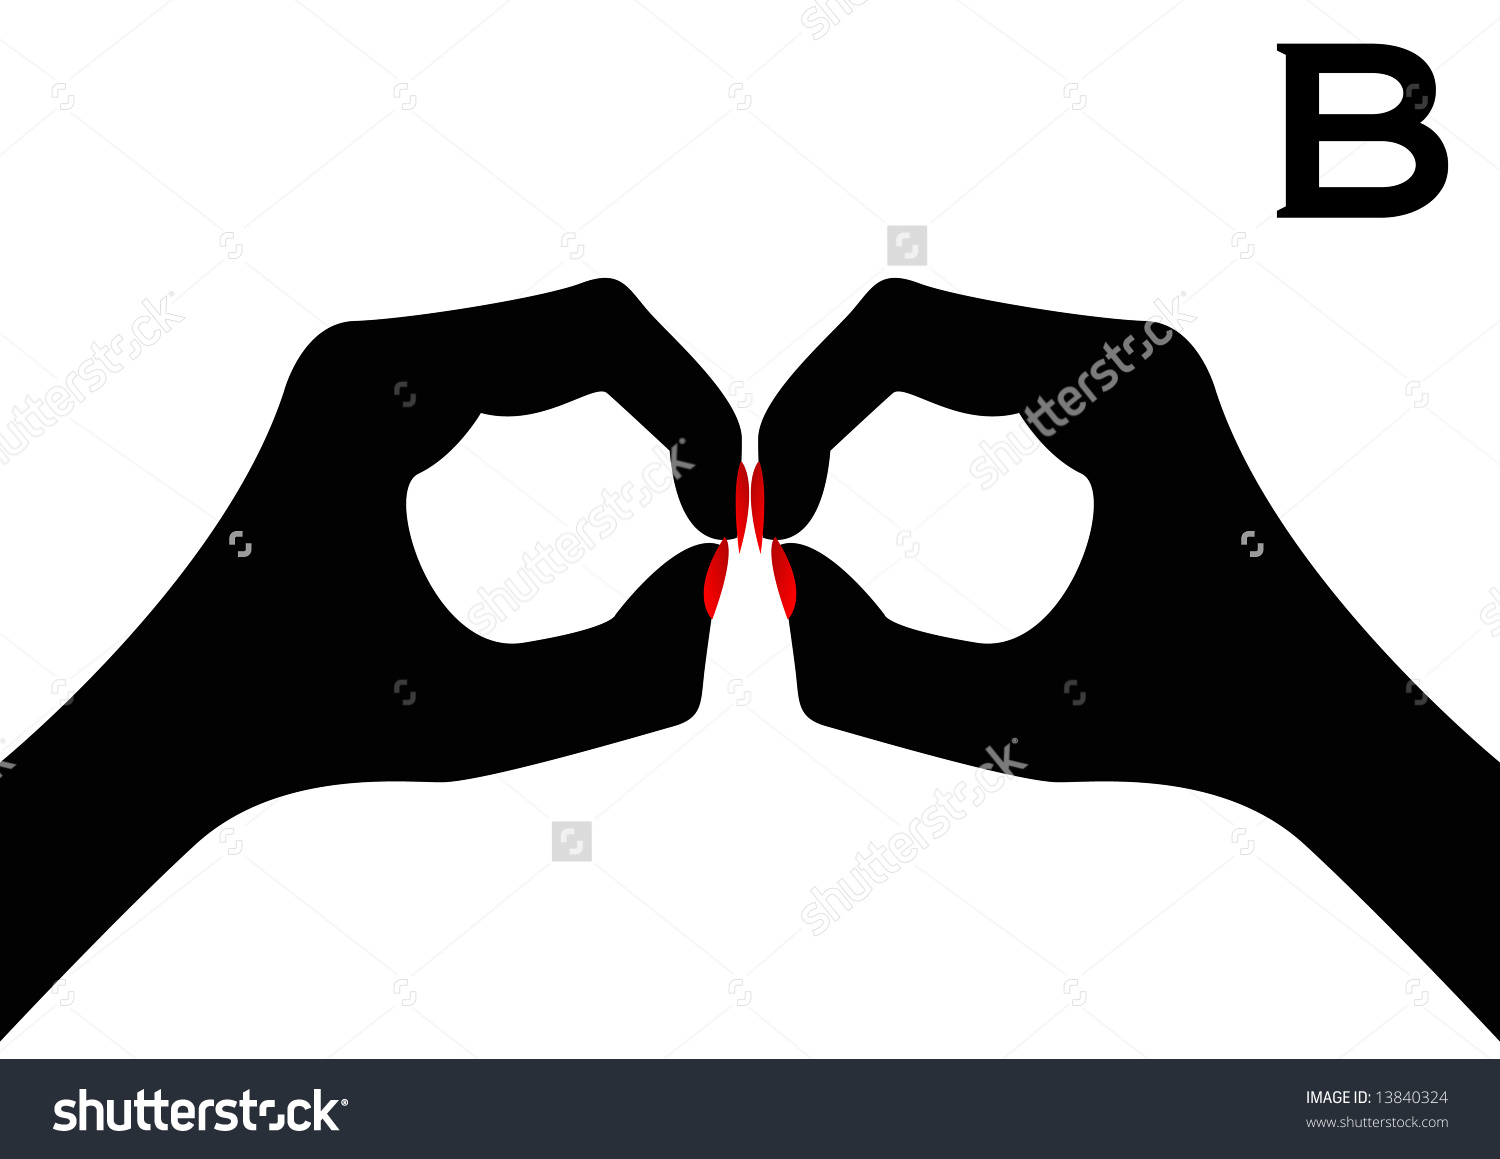 Sign language clipart letter b vector royalty free British Sign Language Letter B Stock Photo 13840324 : Shutterstock vector royalty free